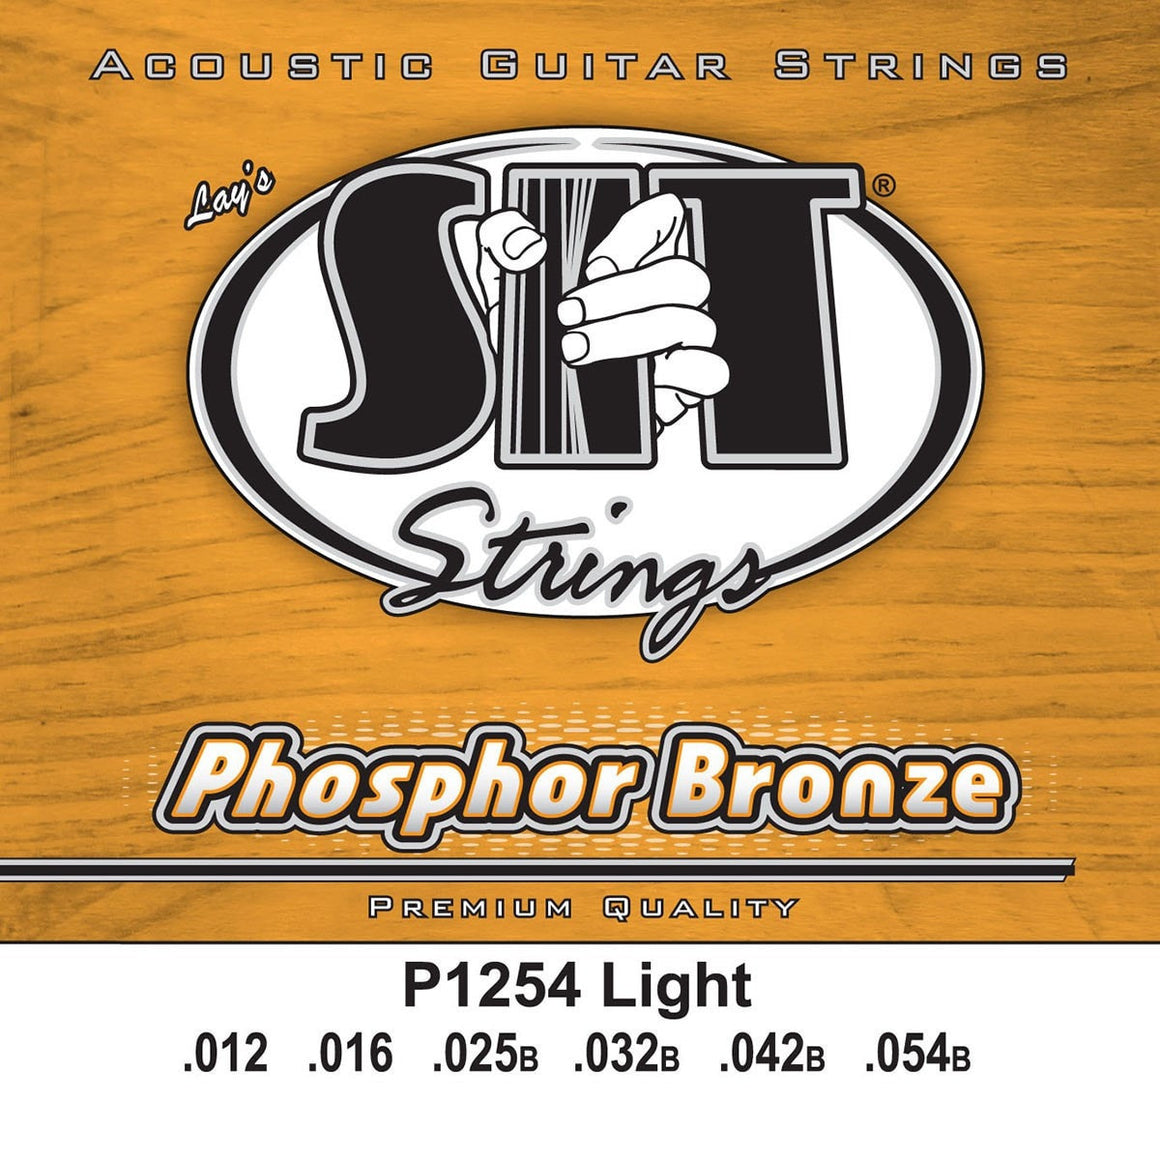 SIT Strings Acoustic Guitar Strings SIT Phosphor Bronze Light P1254 Acoustic Guitar Strings